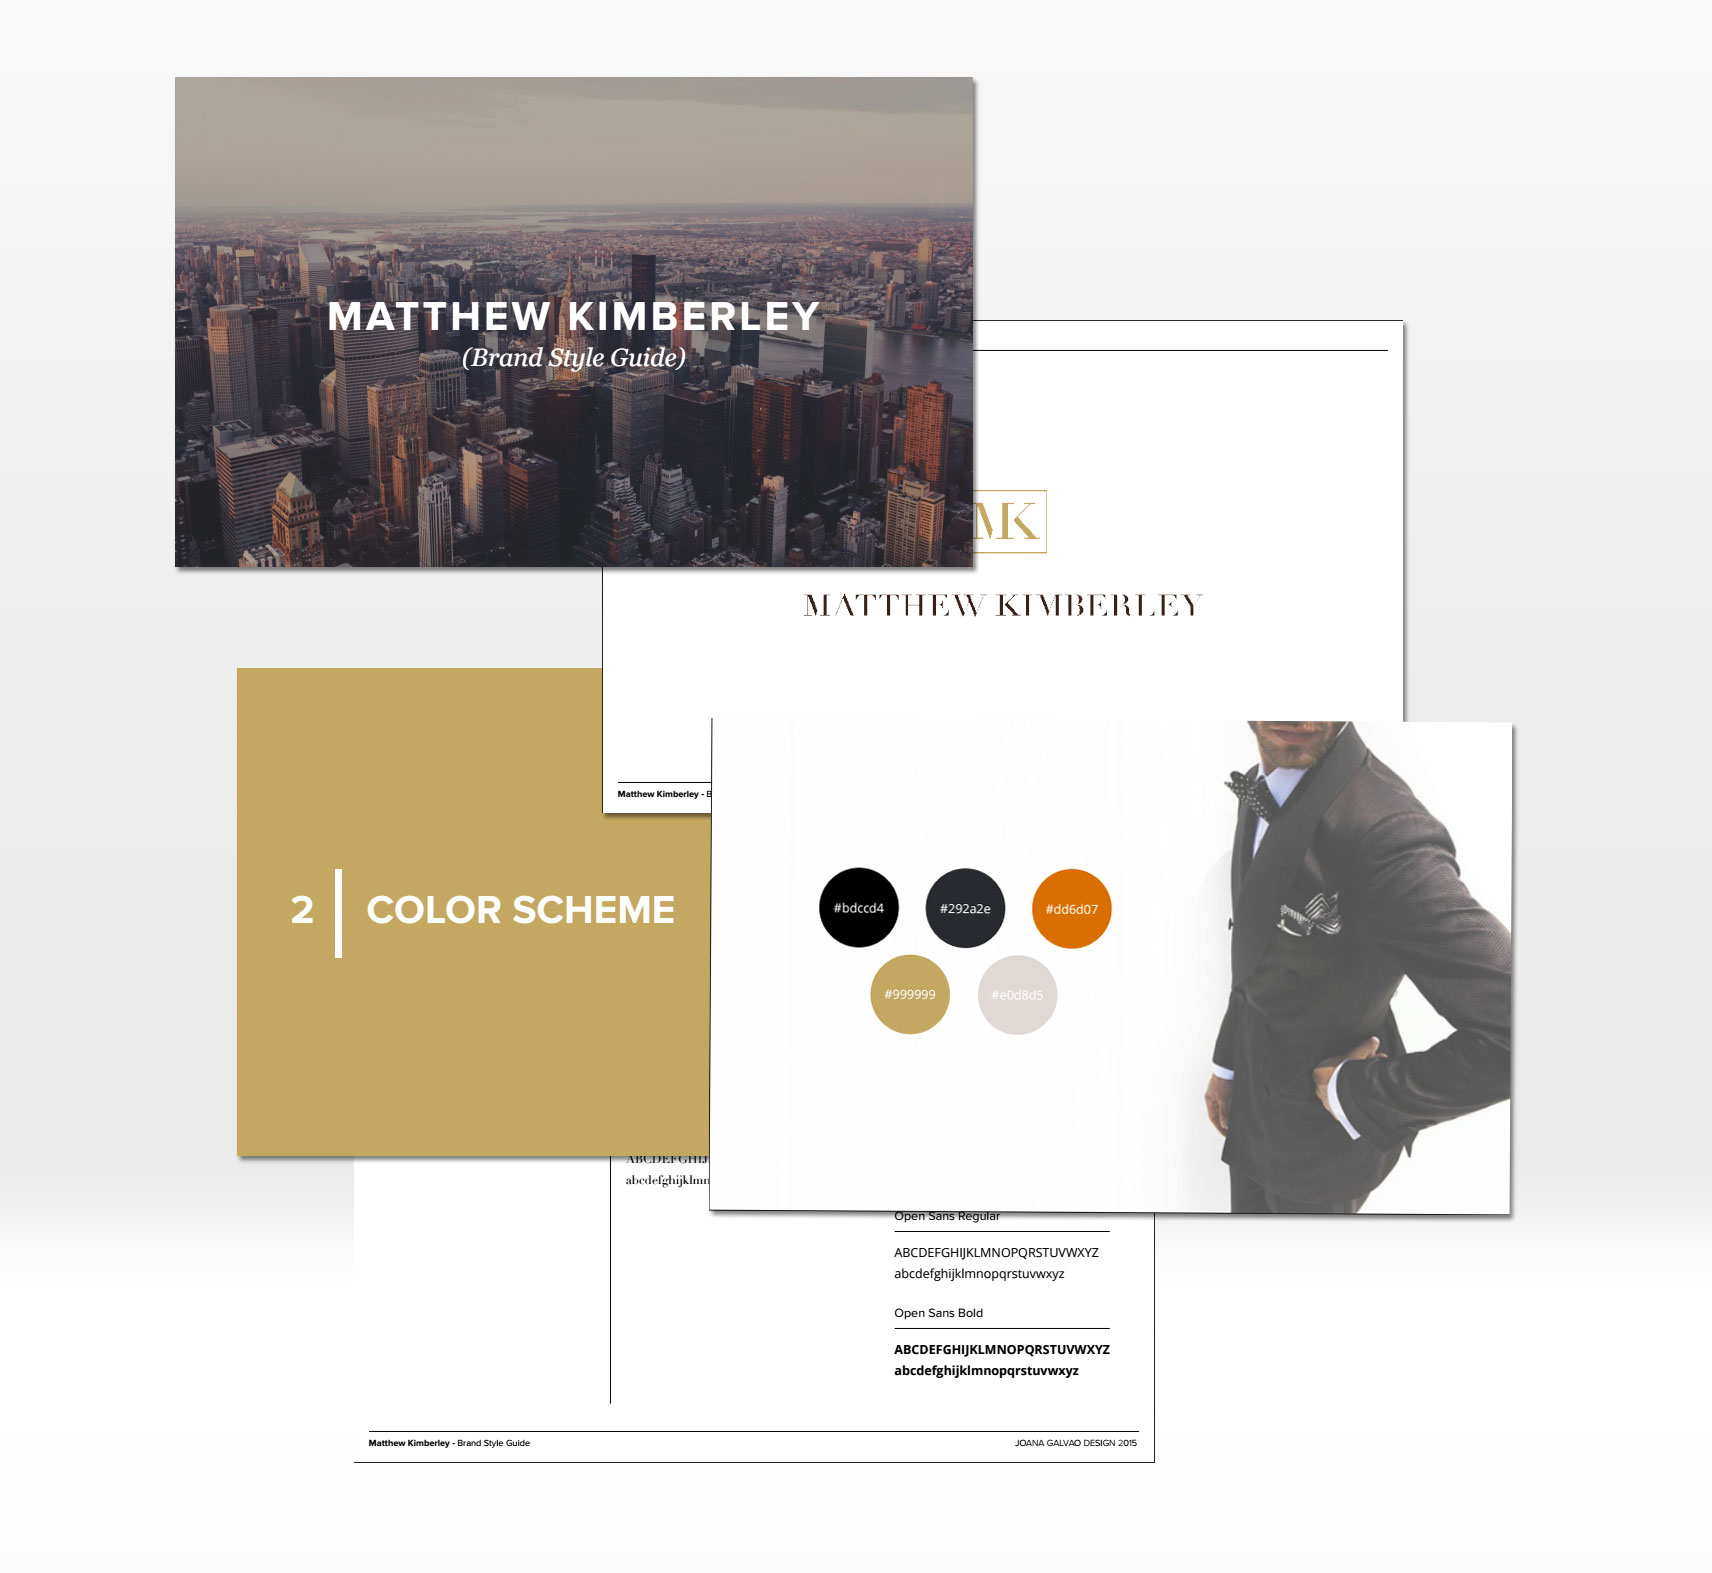 A sneak peak at Matthew's new brand style guide